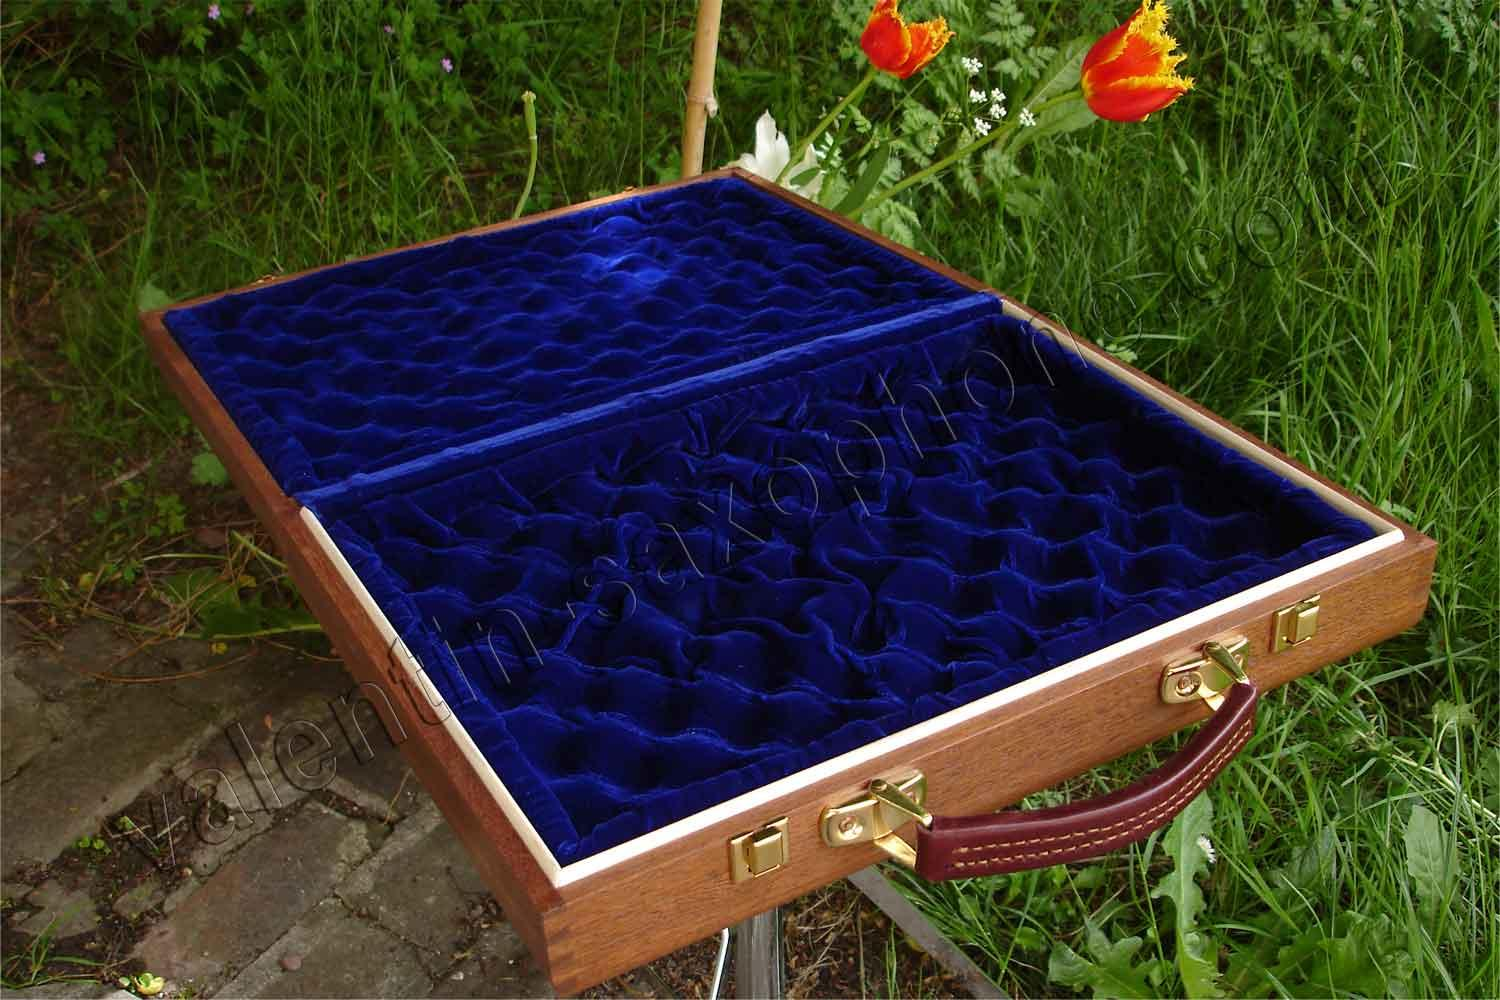 Valentin cases : A luxurious extremely soft blue velvet completes the internal arrangement.